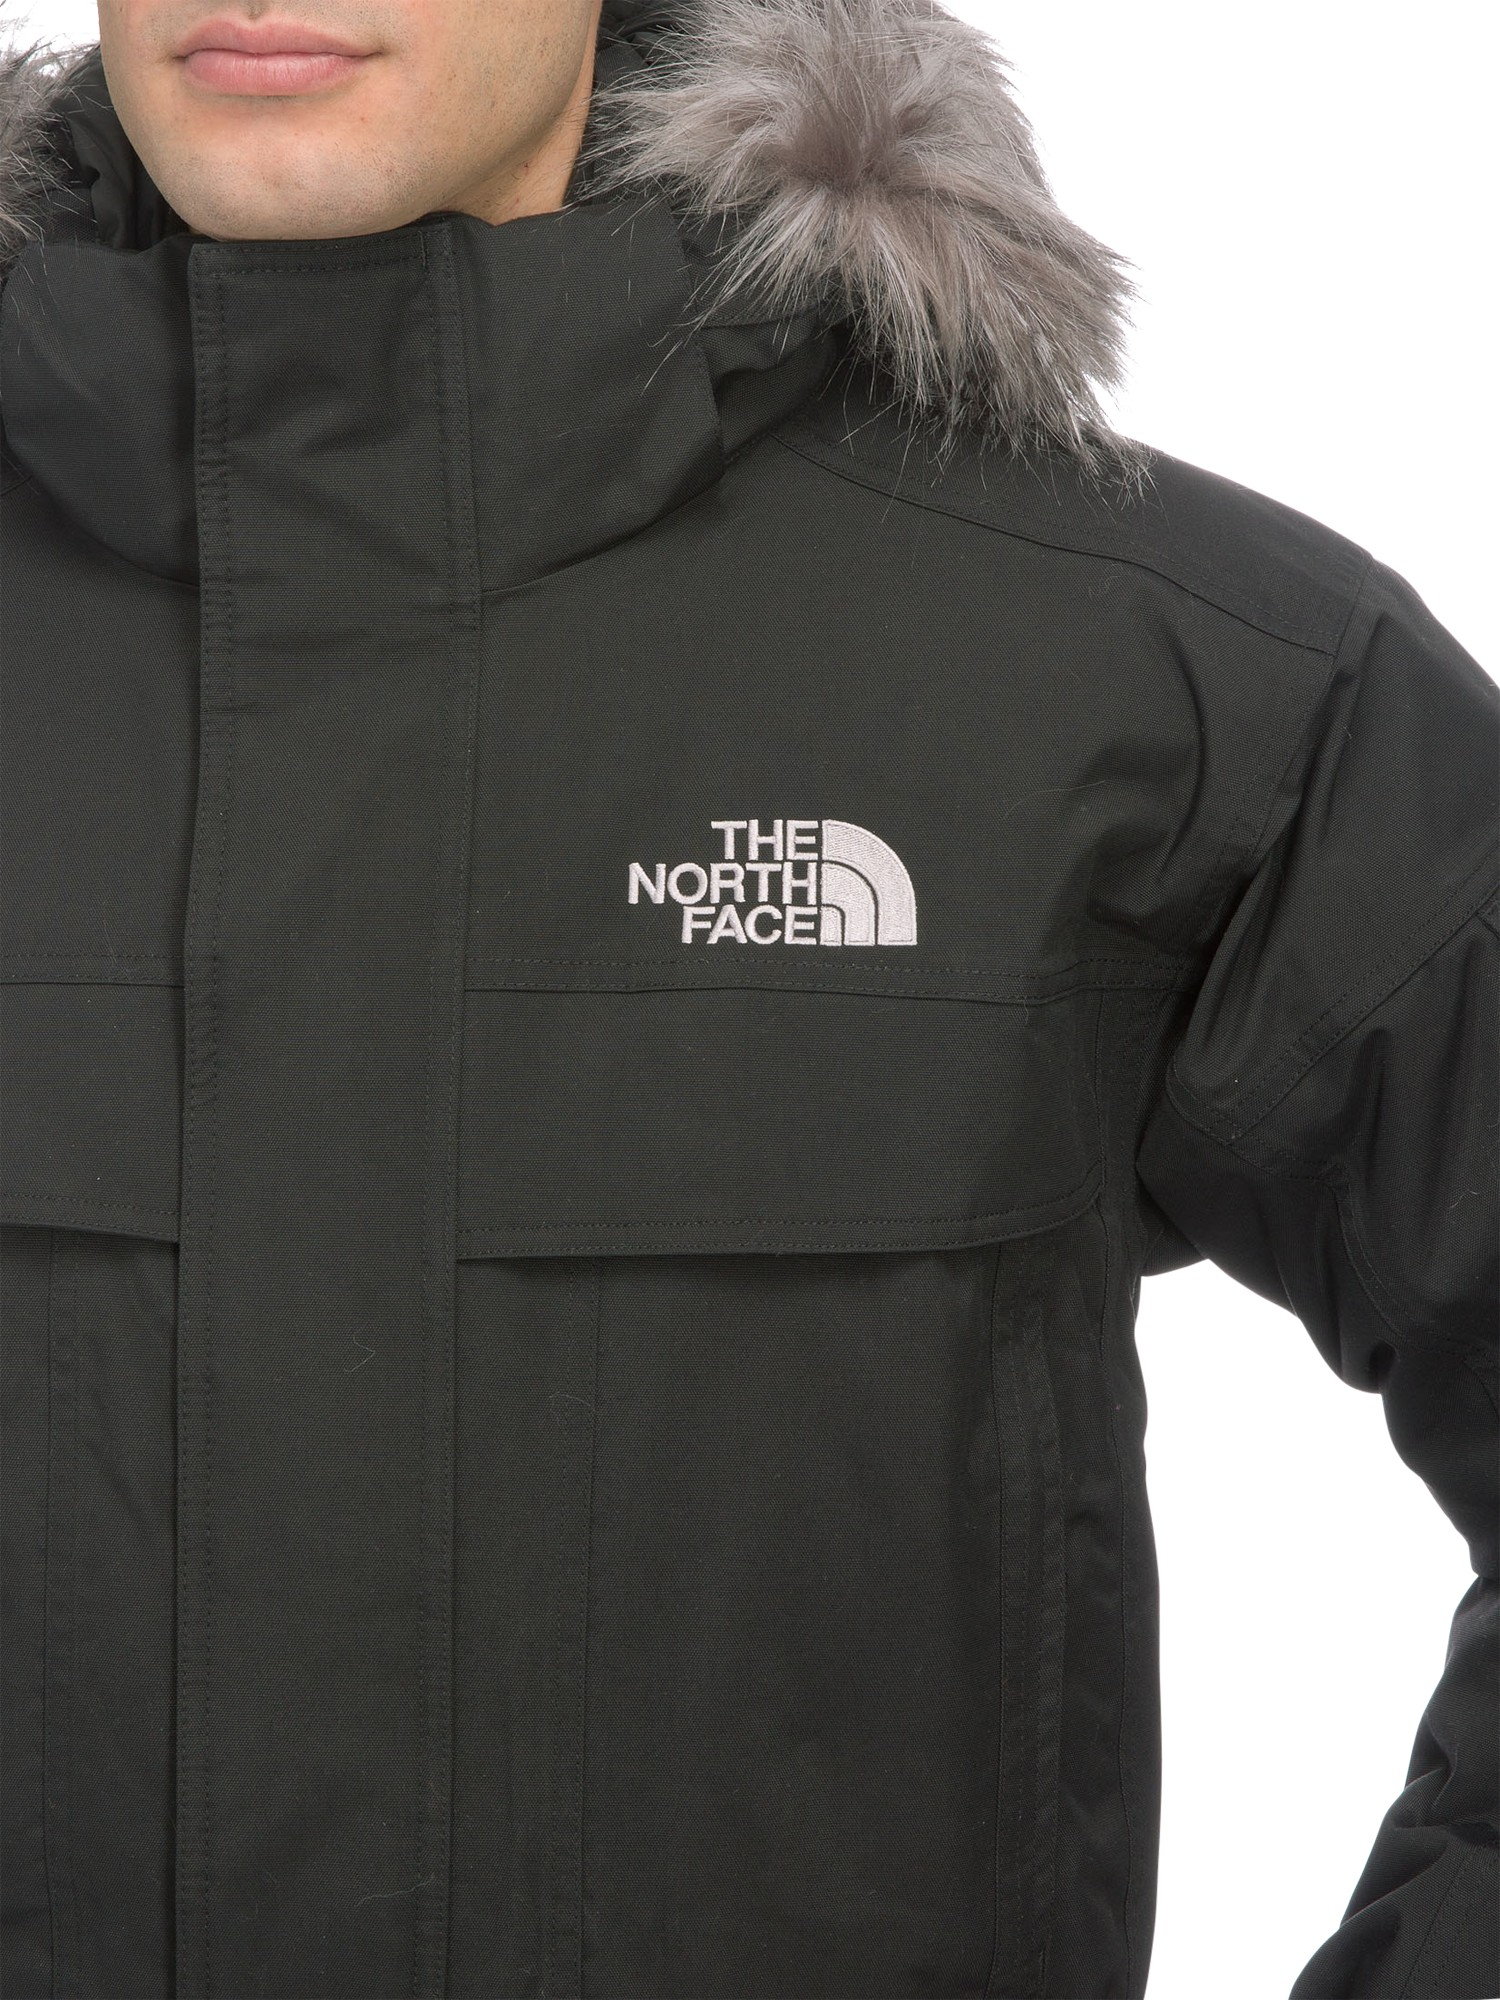 008c9649f coupon for the north face parka mens jacket ee081 8be2c